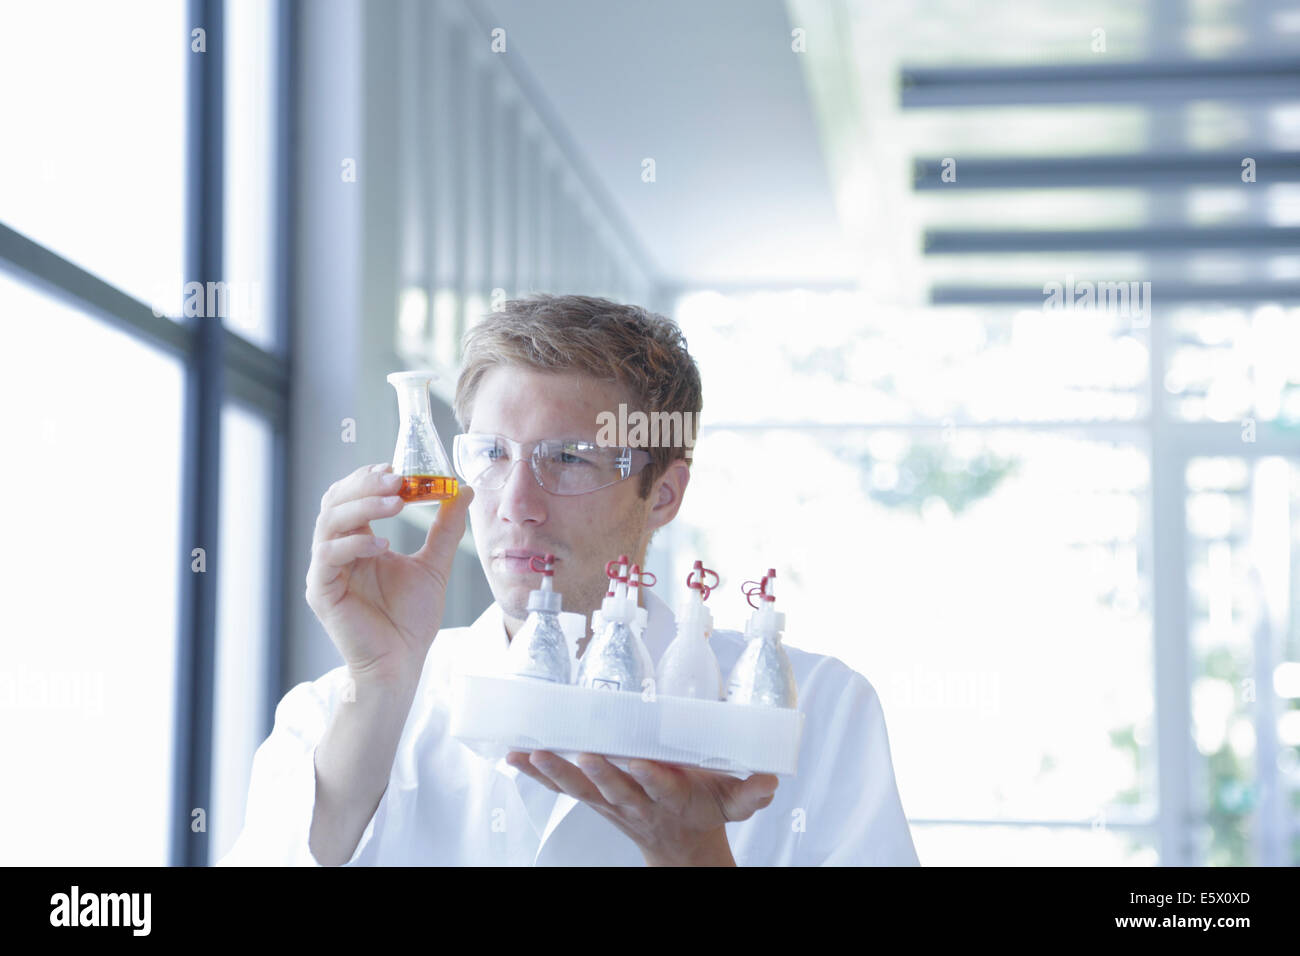 Male scientist analyzing erlenmeyer flask in lab - Stock Image